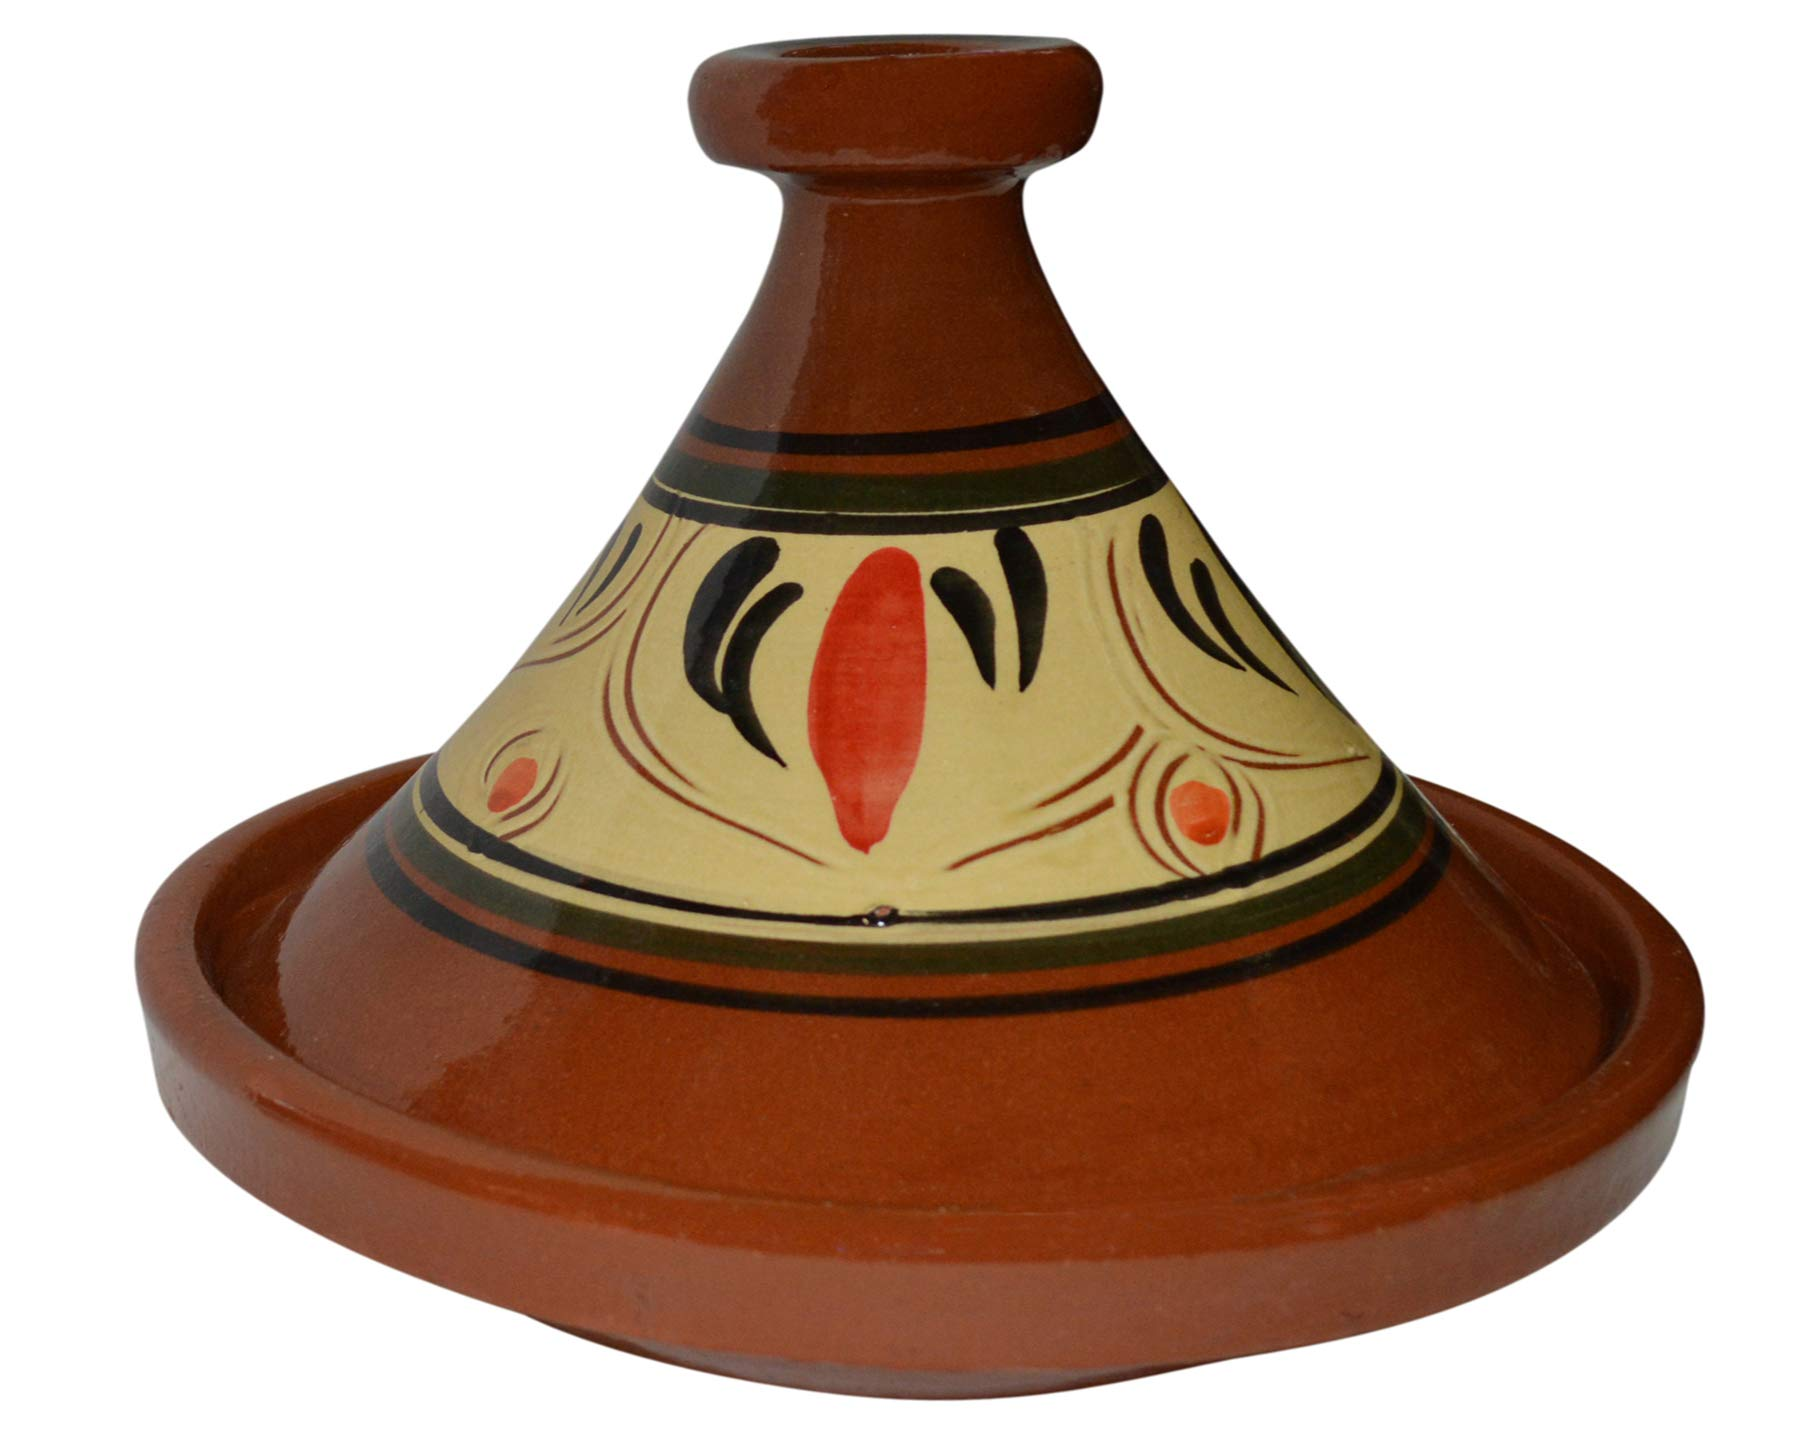 Moroccan Cooking Tagine Handmade 100% Lead Free Safe Large 12 inches Across Traditional by Cooking Tagines